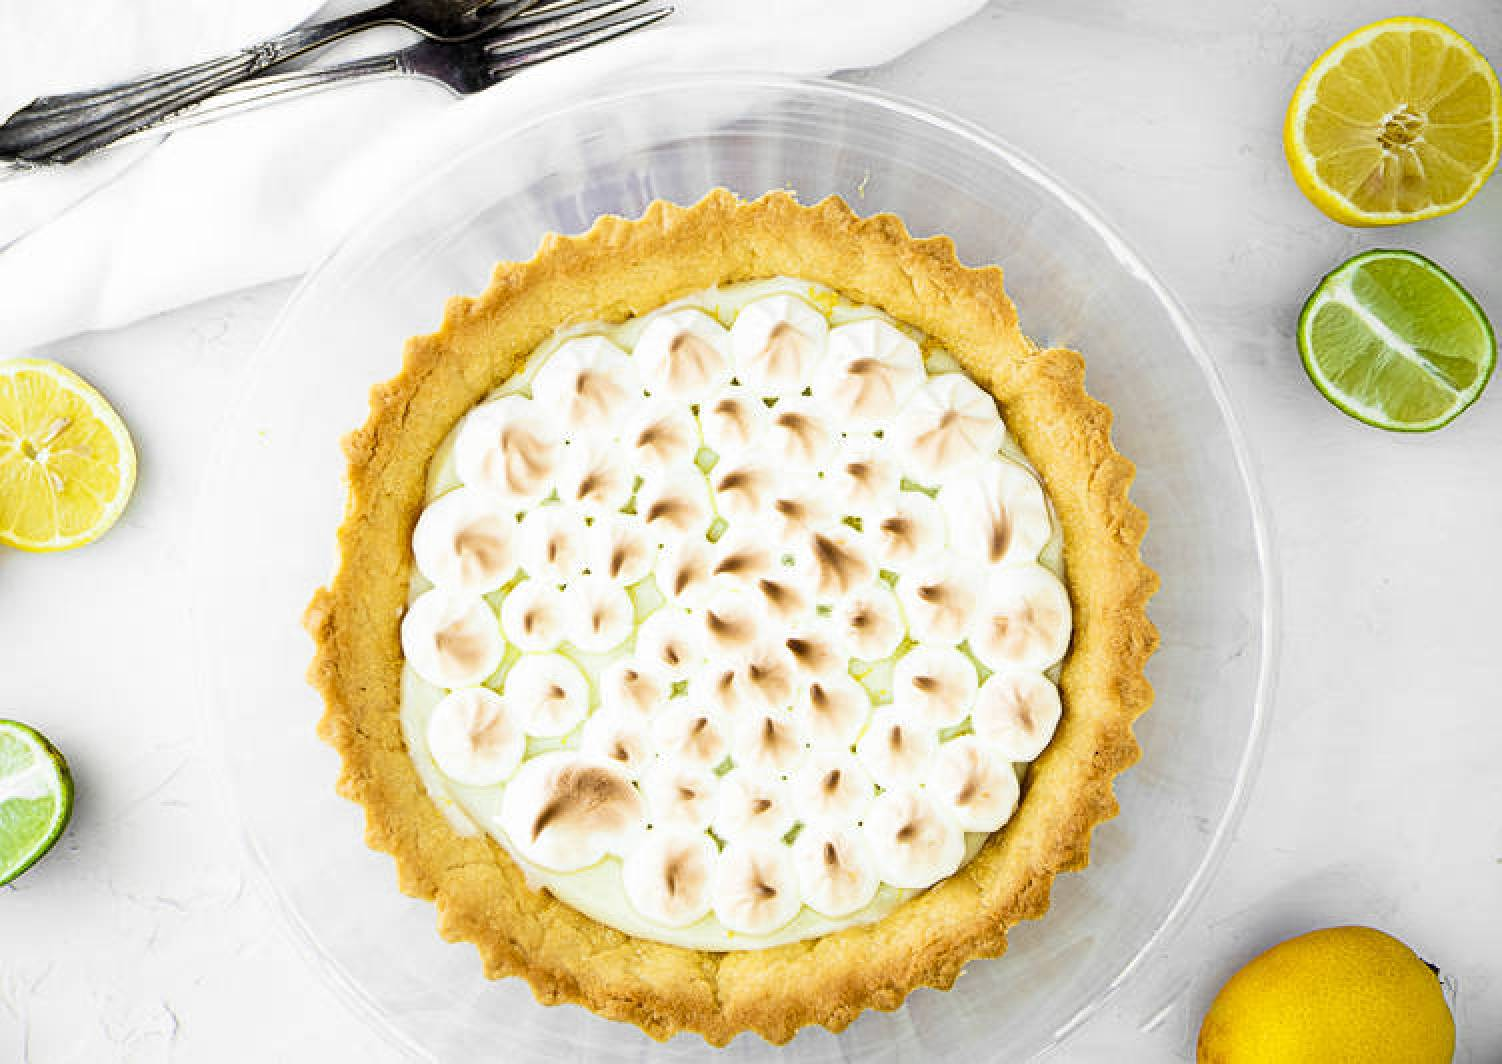 Lime and lemon tart